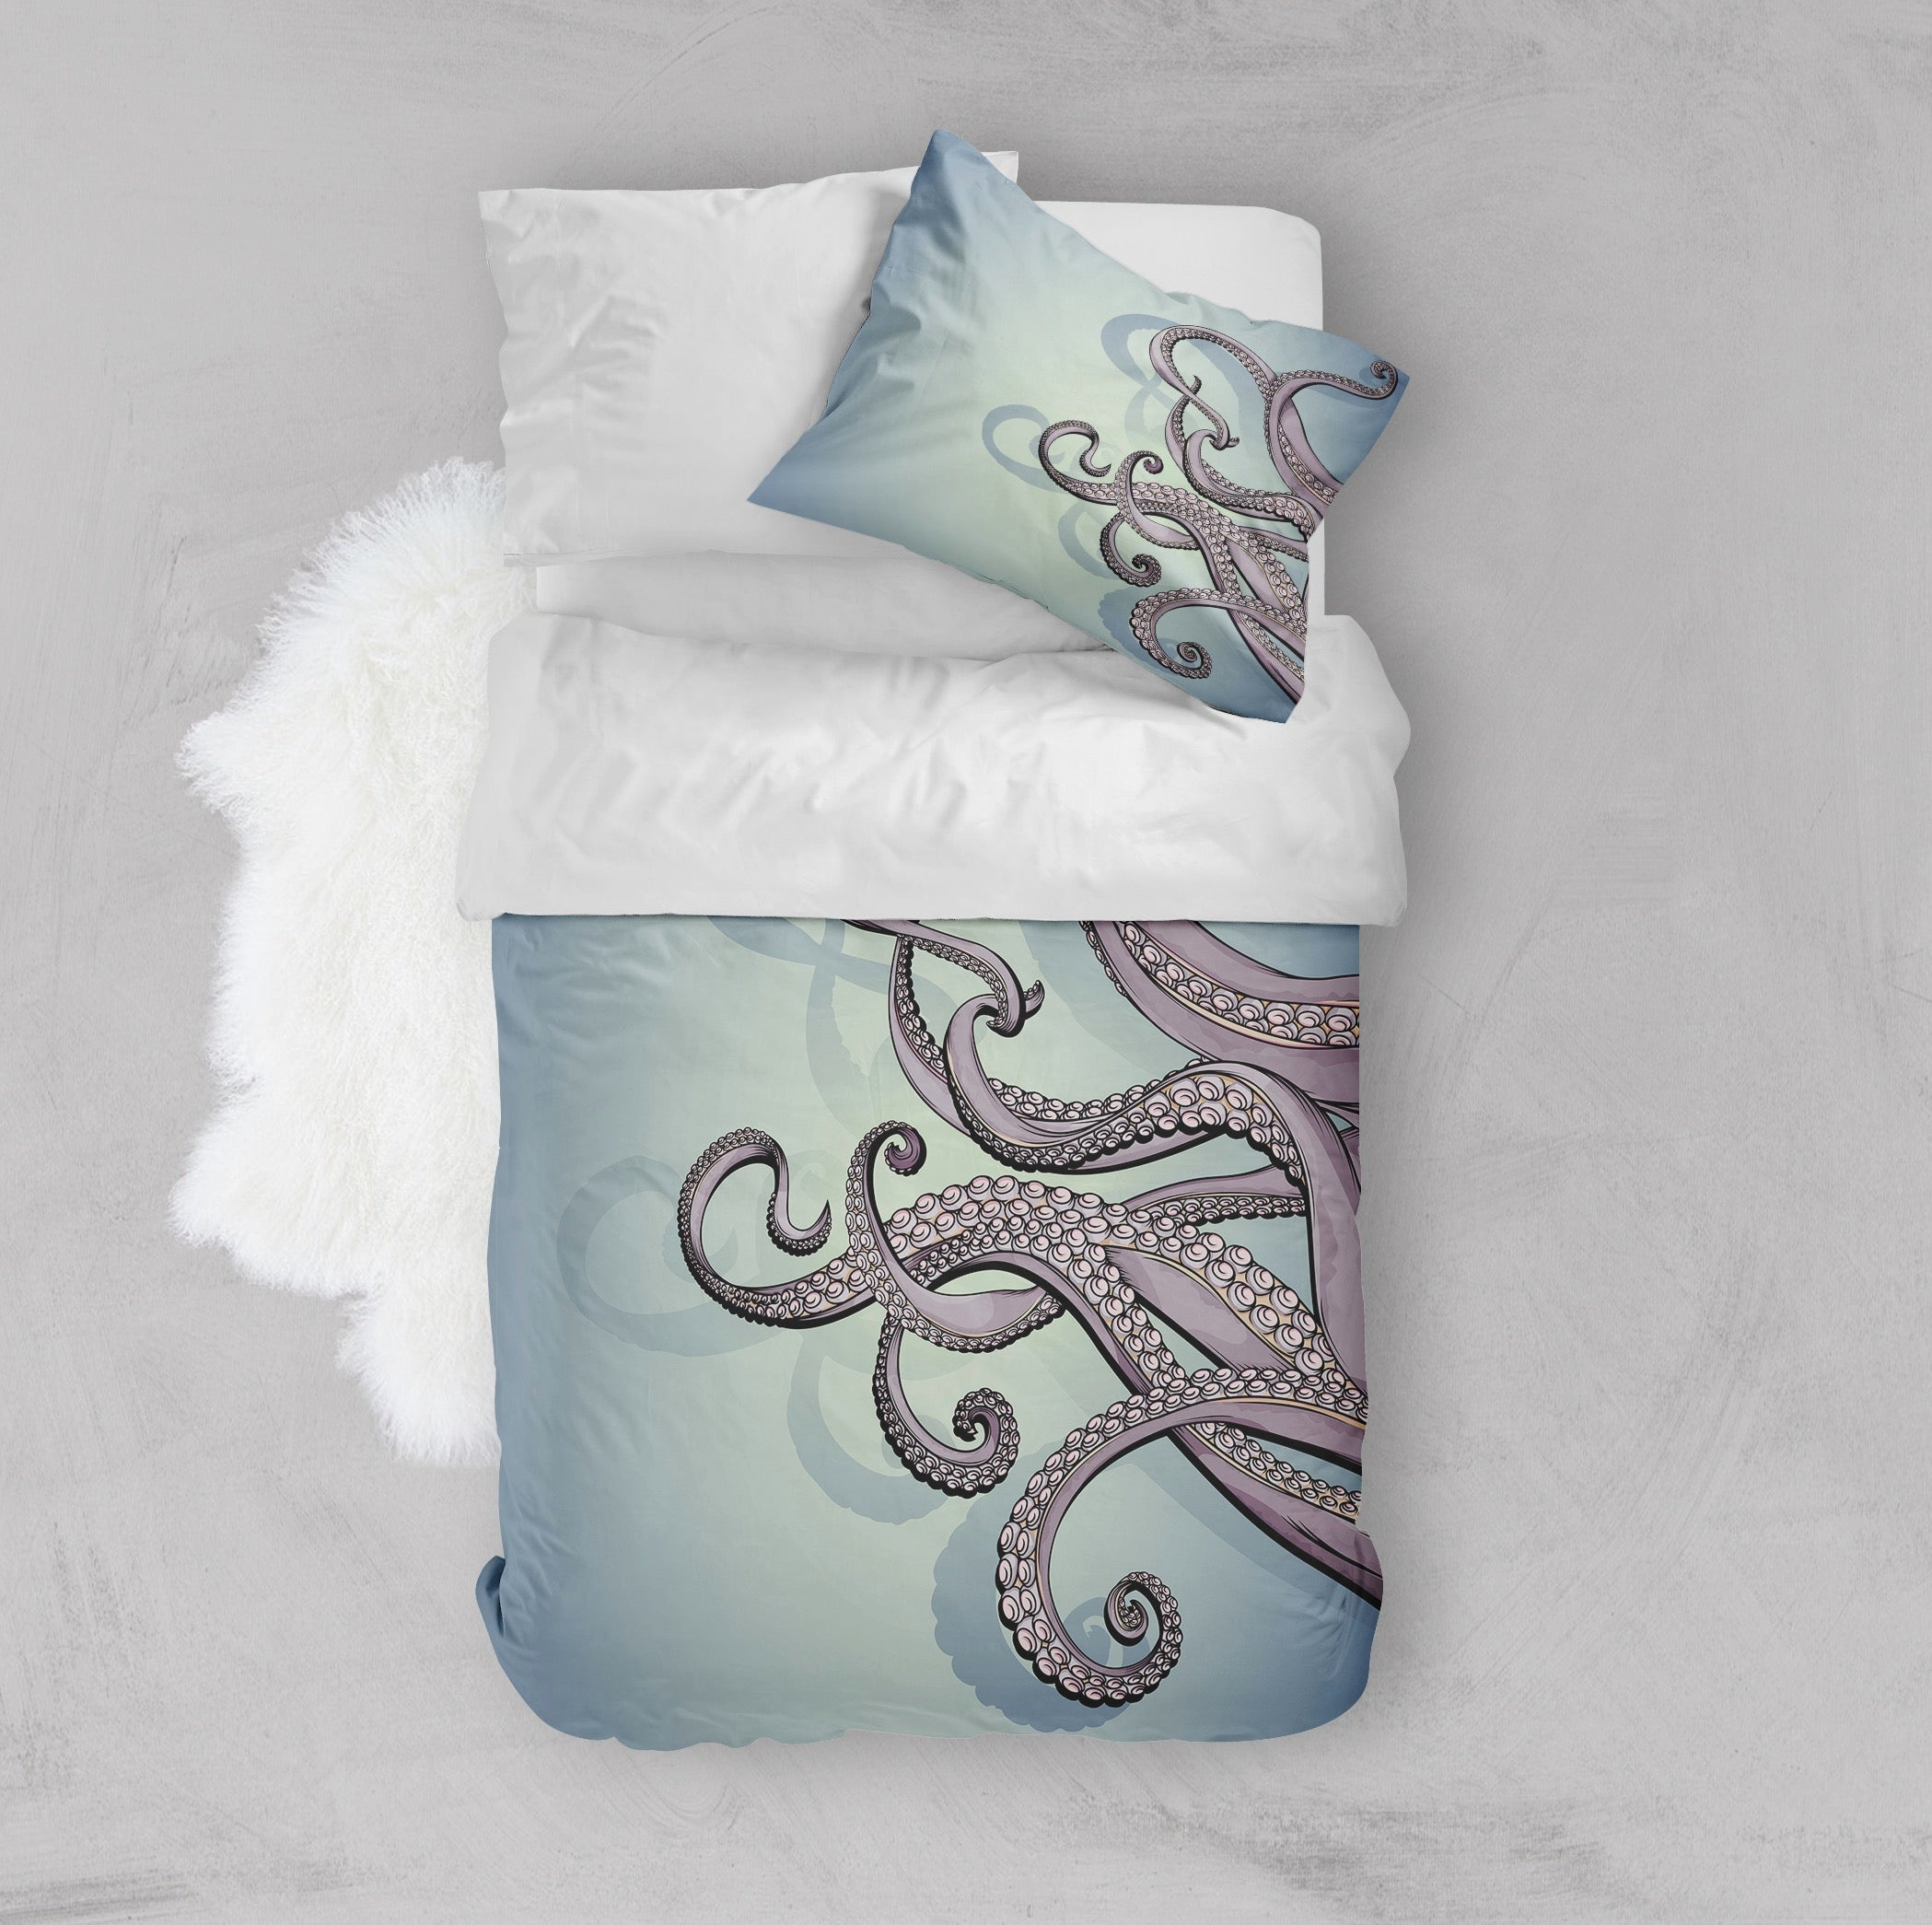 lime cute find bedding sets of bedroom where clearance duvets turquoise pinch quality ruffled covers ruffle white full single beds gray green cover queen pretty gold black double and luxury to sizes set floral teal light duvet best popular quilt comforters size pleated sale for w